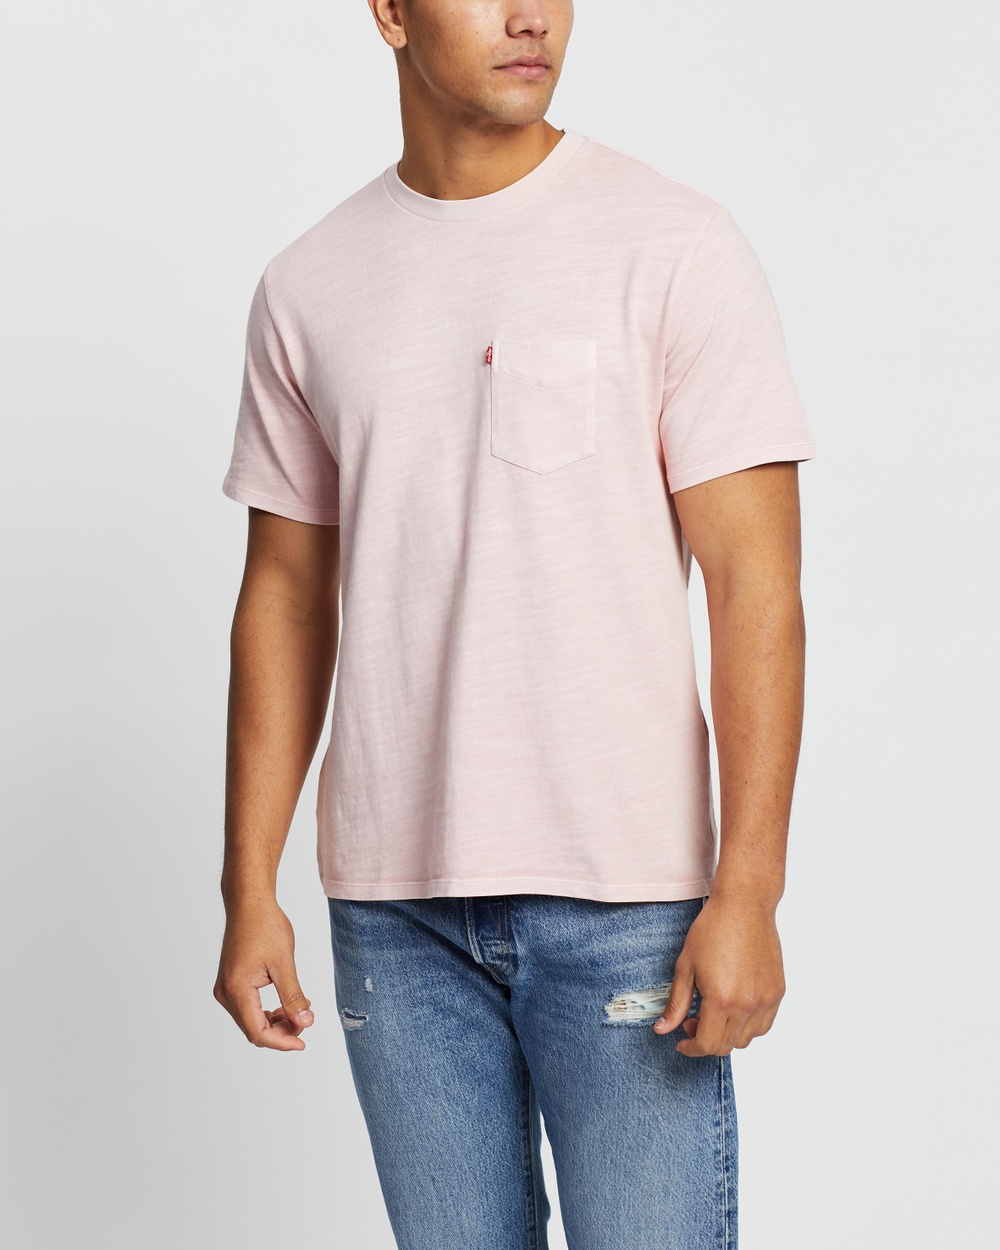 Levi's - Relaxed Garment Dyed Pocket Tee - T-Shirts & Singlets (Powder Pink) Relaxed Garment Dyed Pocket Tee